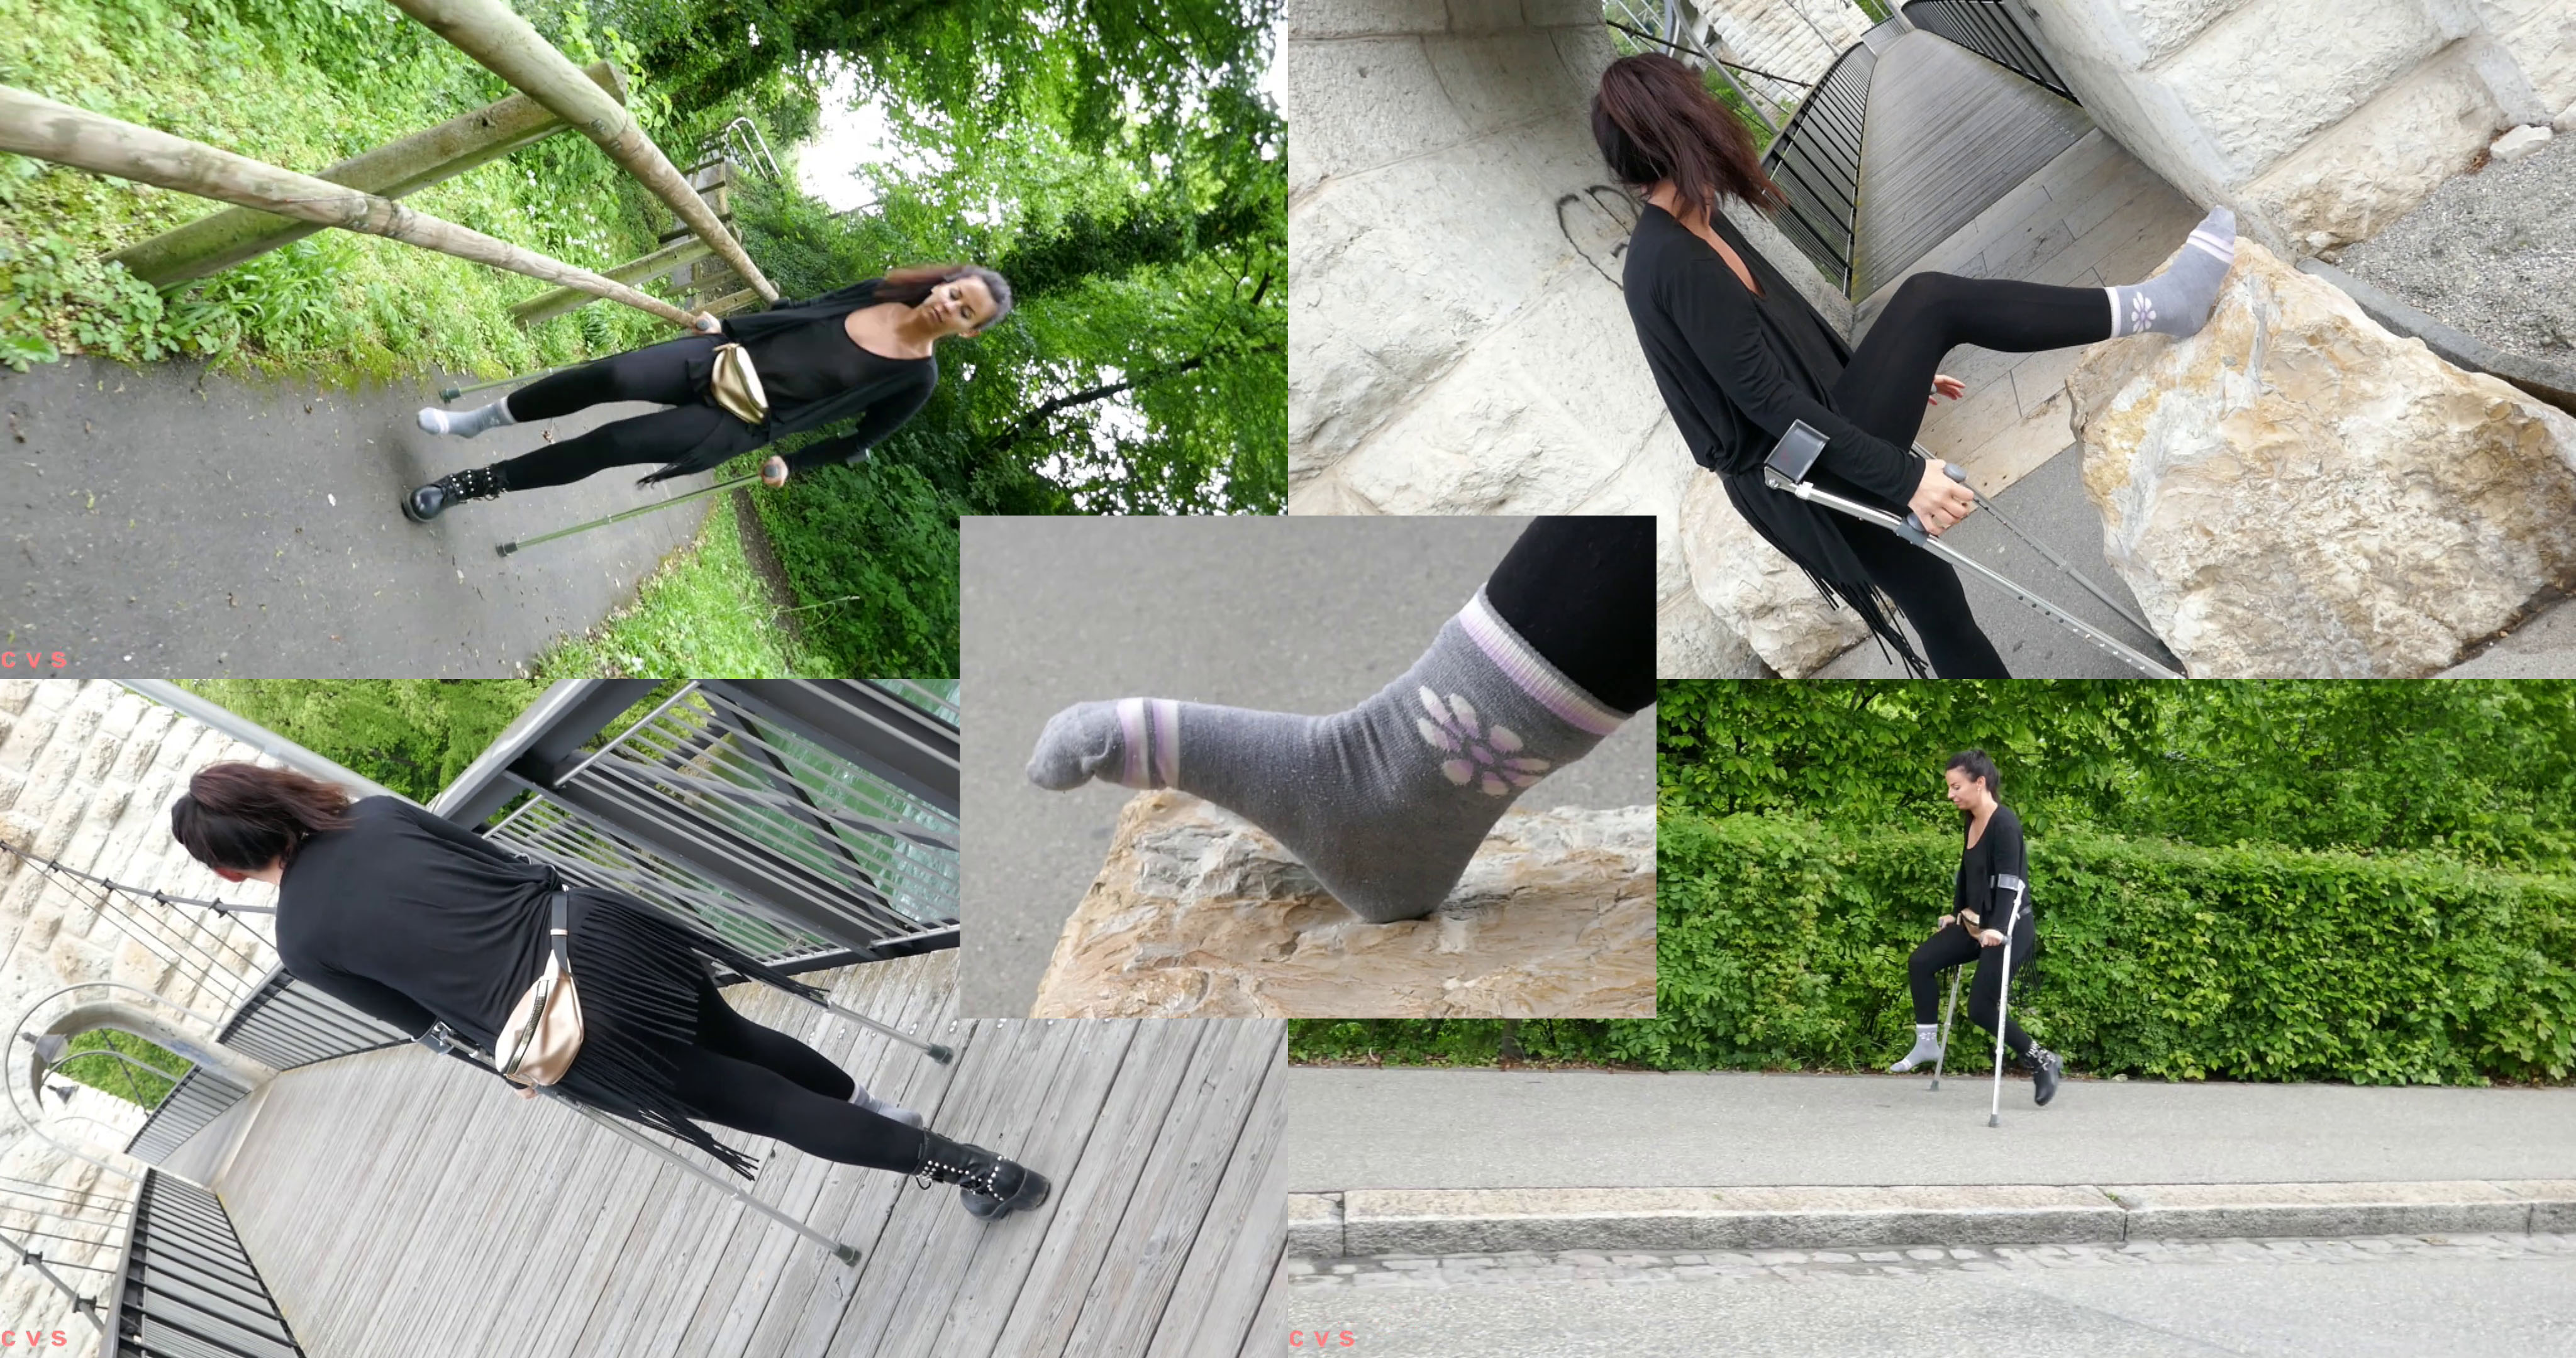 Gaby - Sprained in Switzerland: Gaby has a sprained ankle, but it doesn't stop her to go for seesighting. Follow her, enjoy! :)